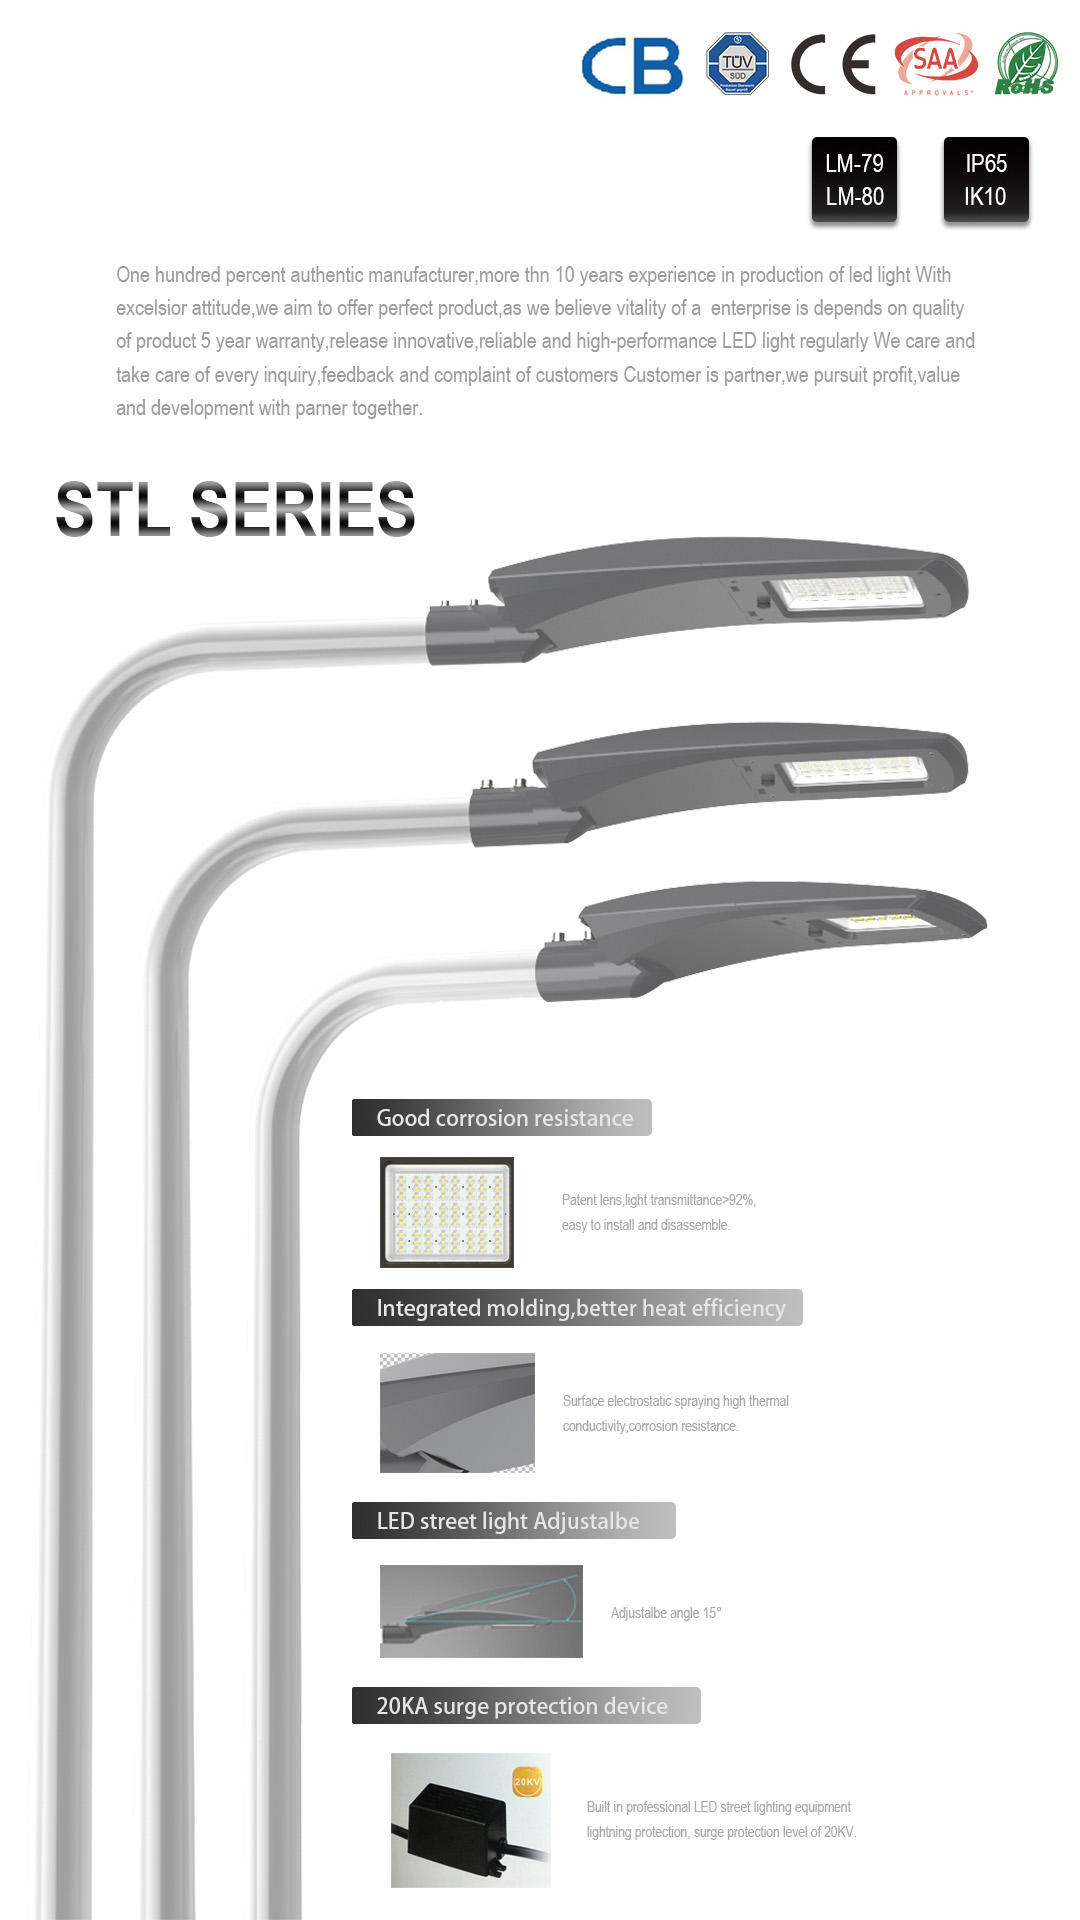 SEEKING series outdoor street light with higher efficiency for roadways